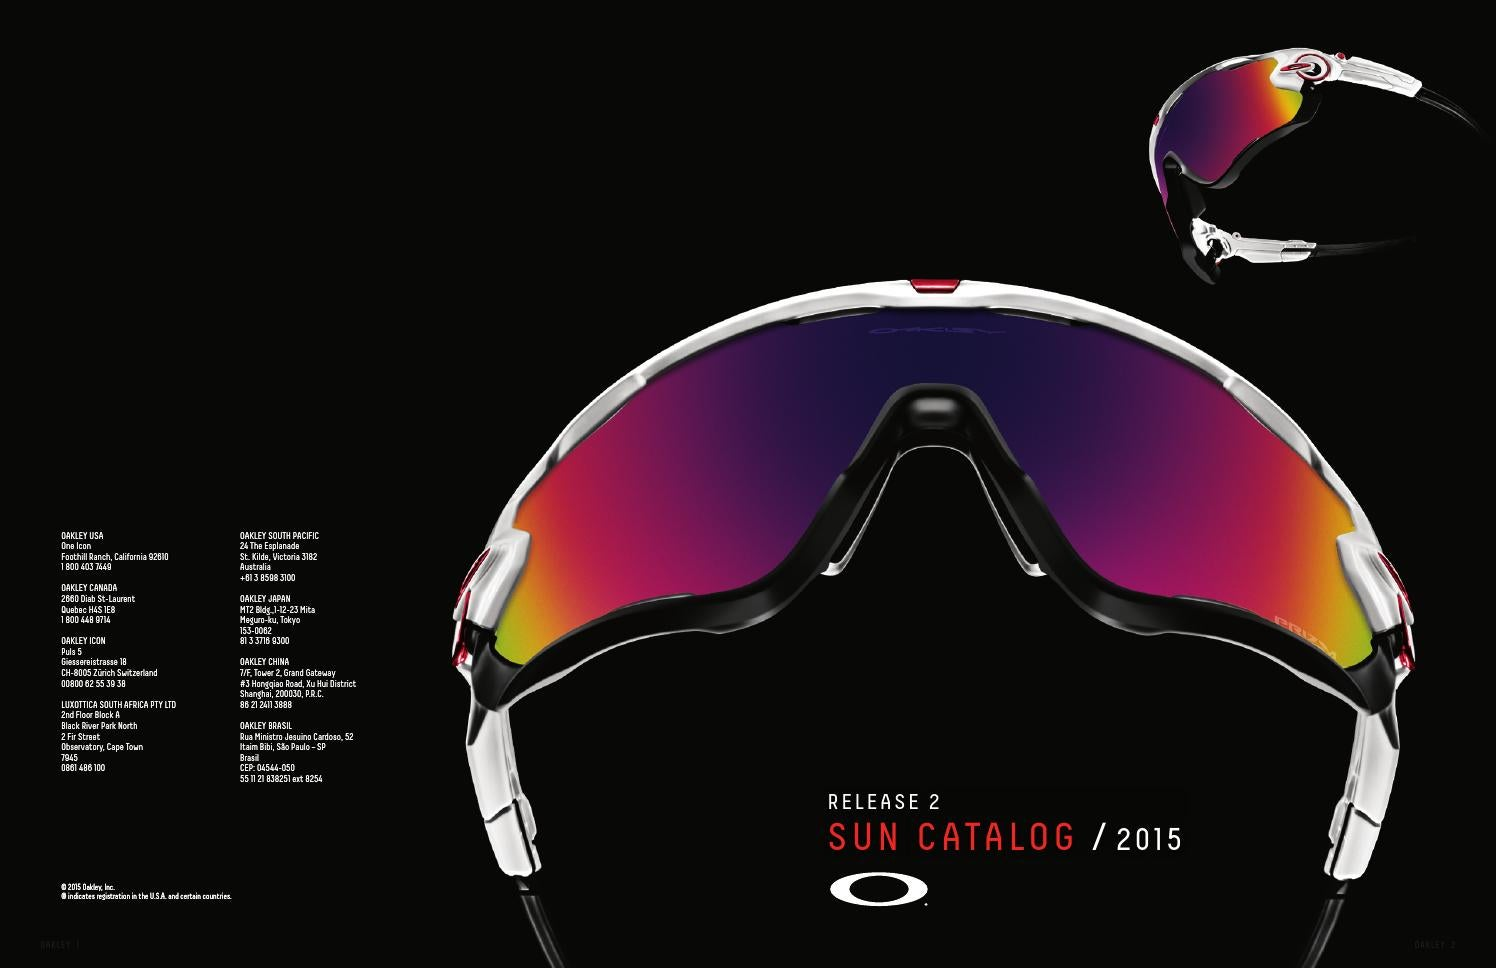 6f3a99621c2 R2 eyewear catalog(1) by Matthew Weisman - issuu